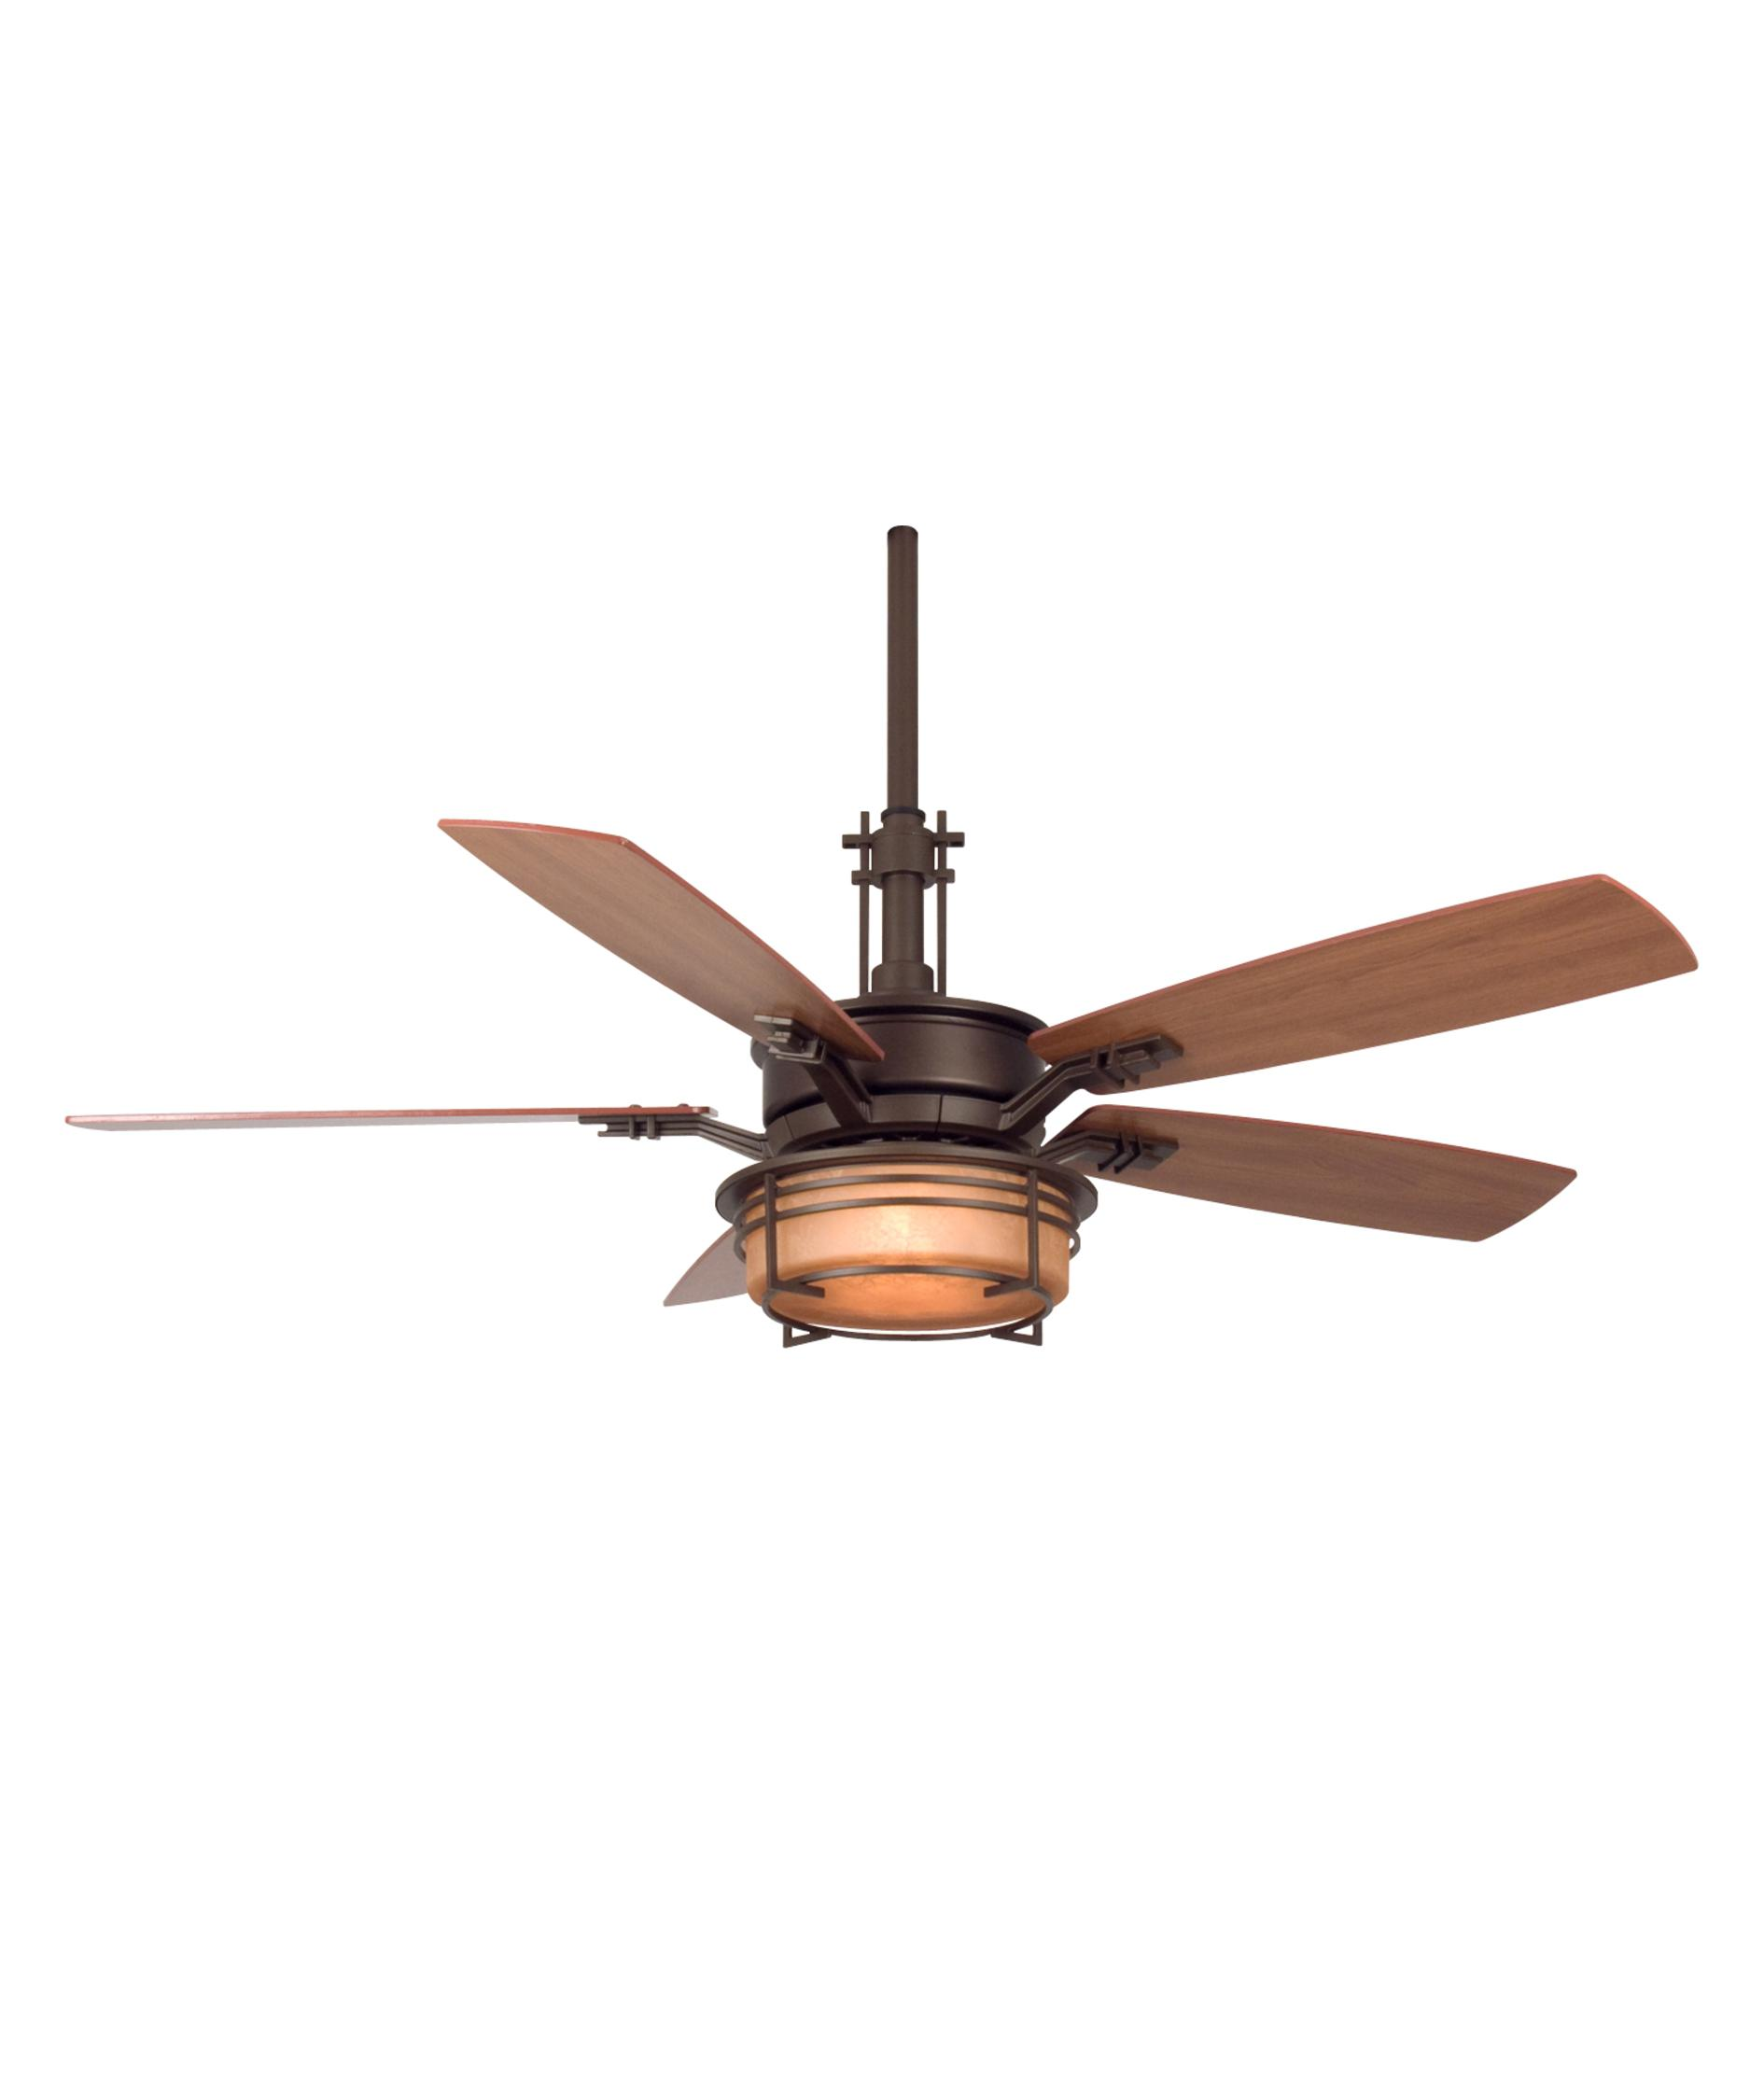 fanimation fp5220 andover 54 inch 5 blade ceiling fan capitol lighting - Outdoor Ceiling Fans With Lights